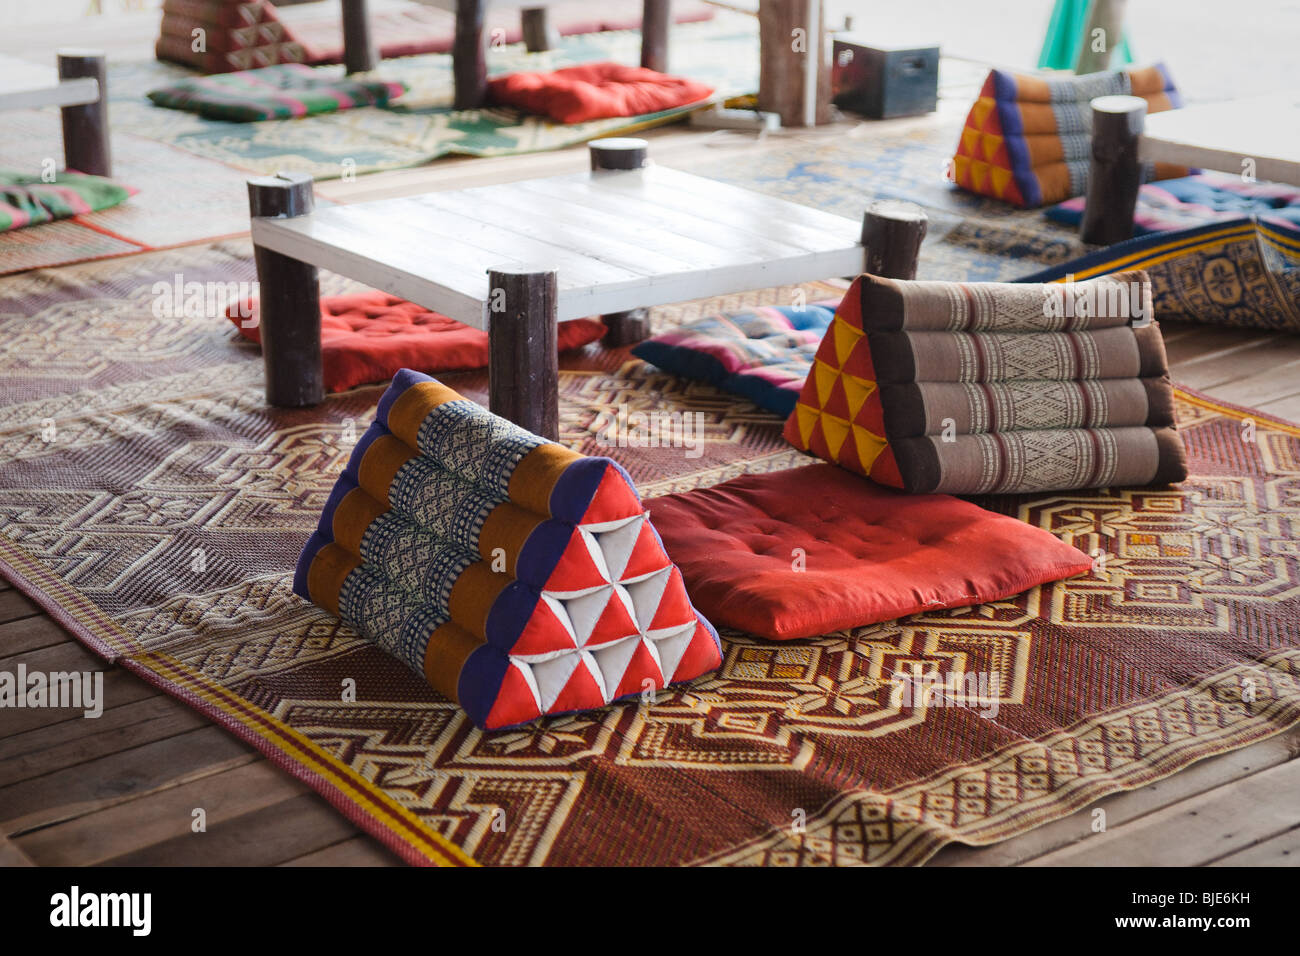 Travel image of typical Thai prism-shaped triangle pillows on a ...